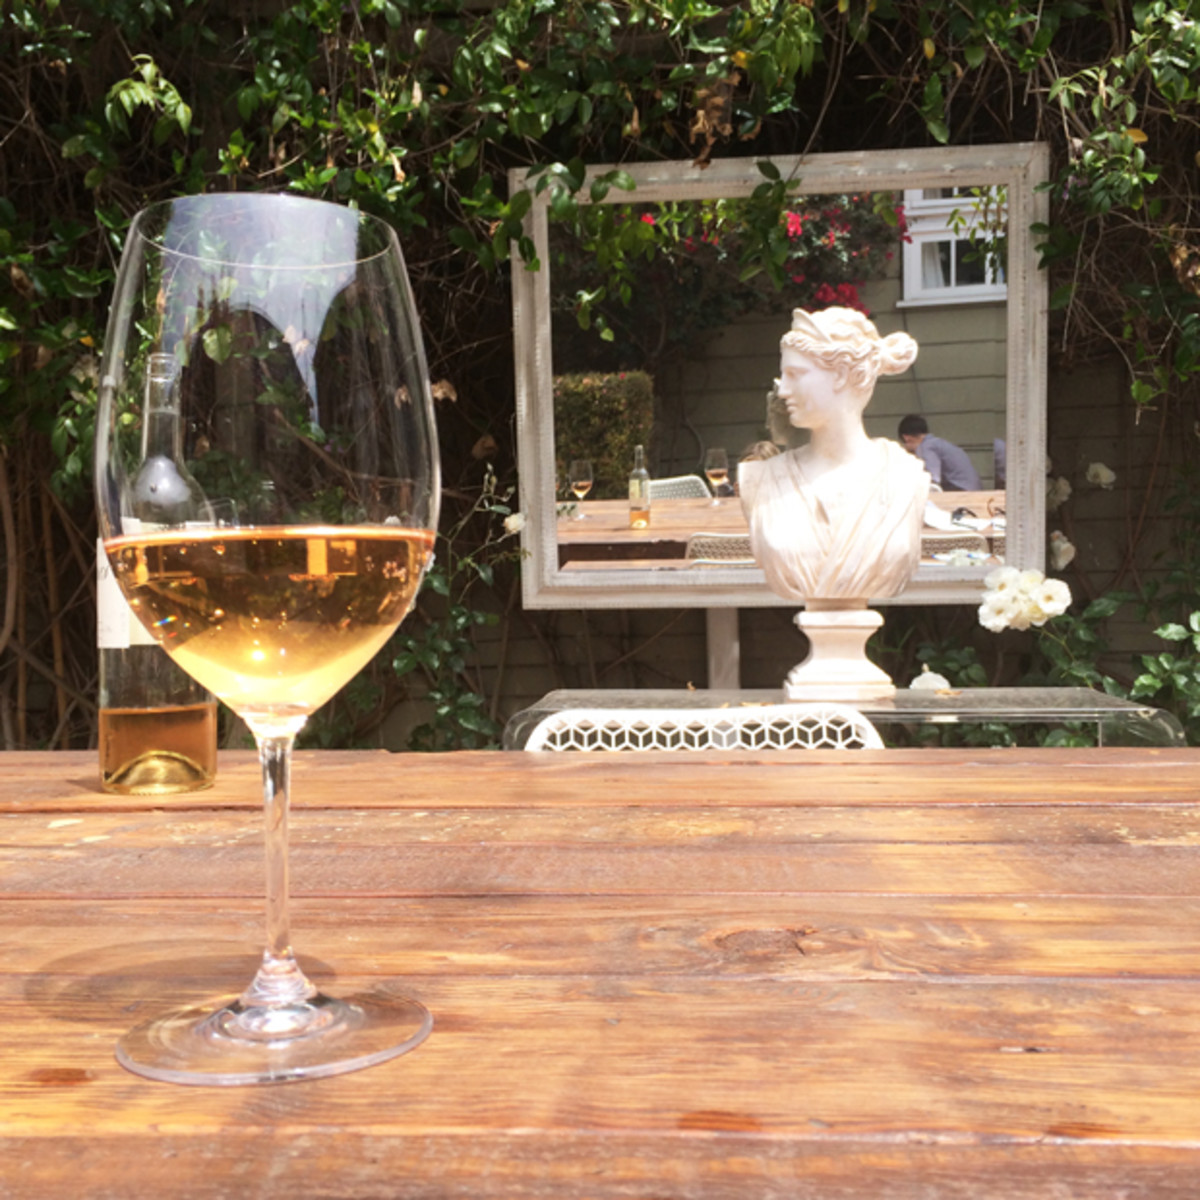 {Enjoying a glass of rosé in our backyard}